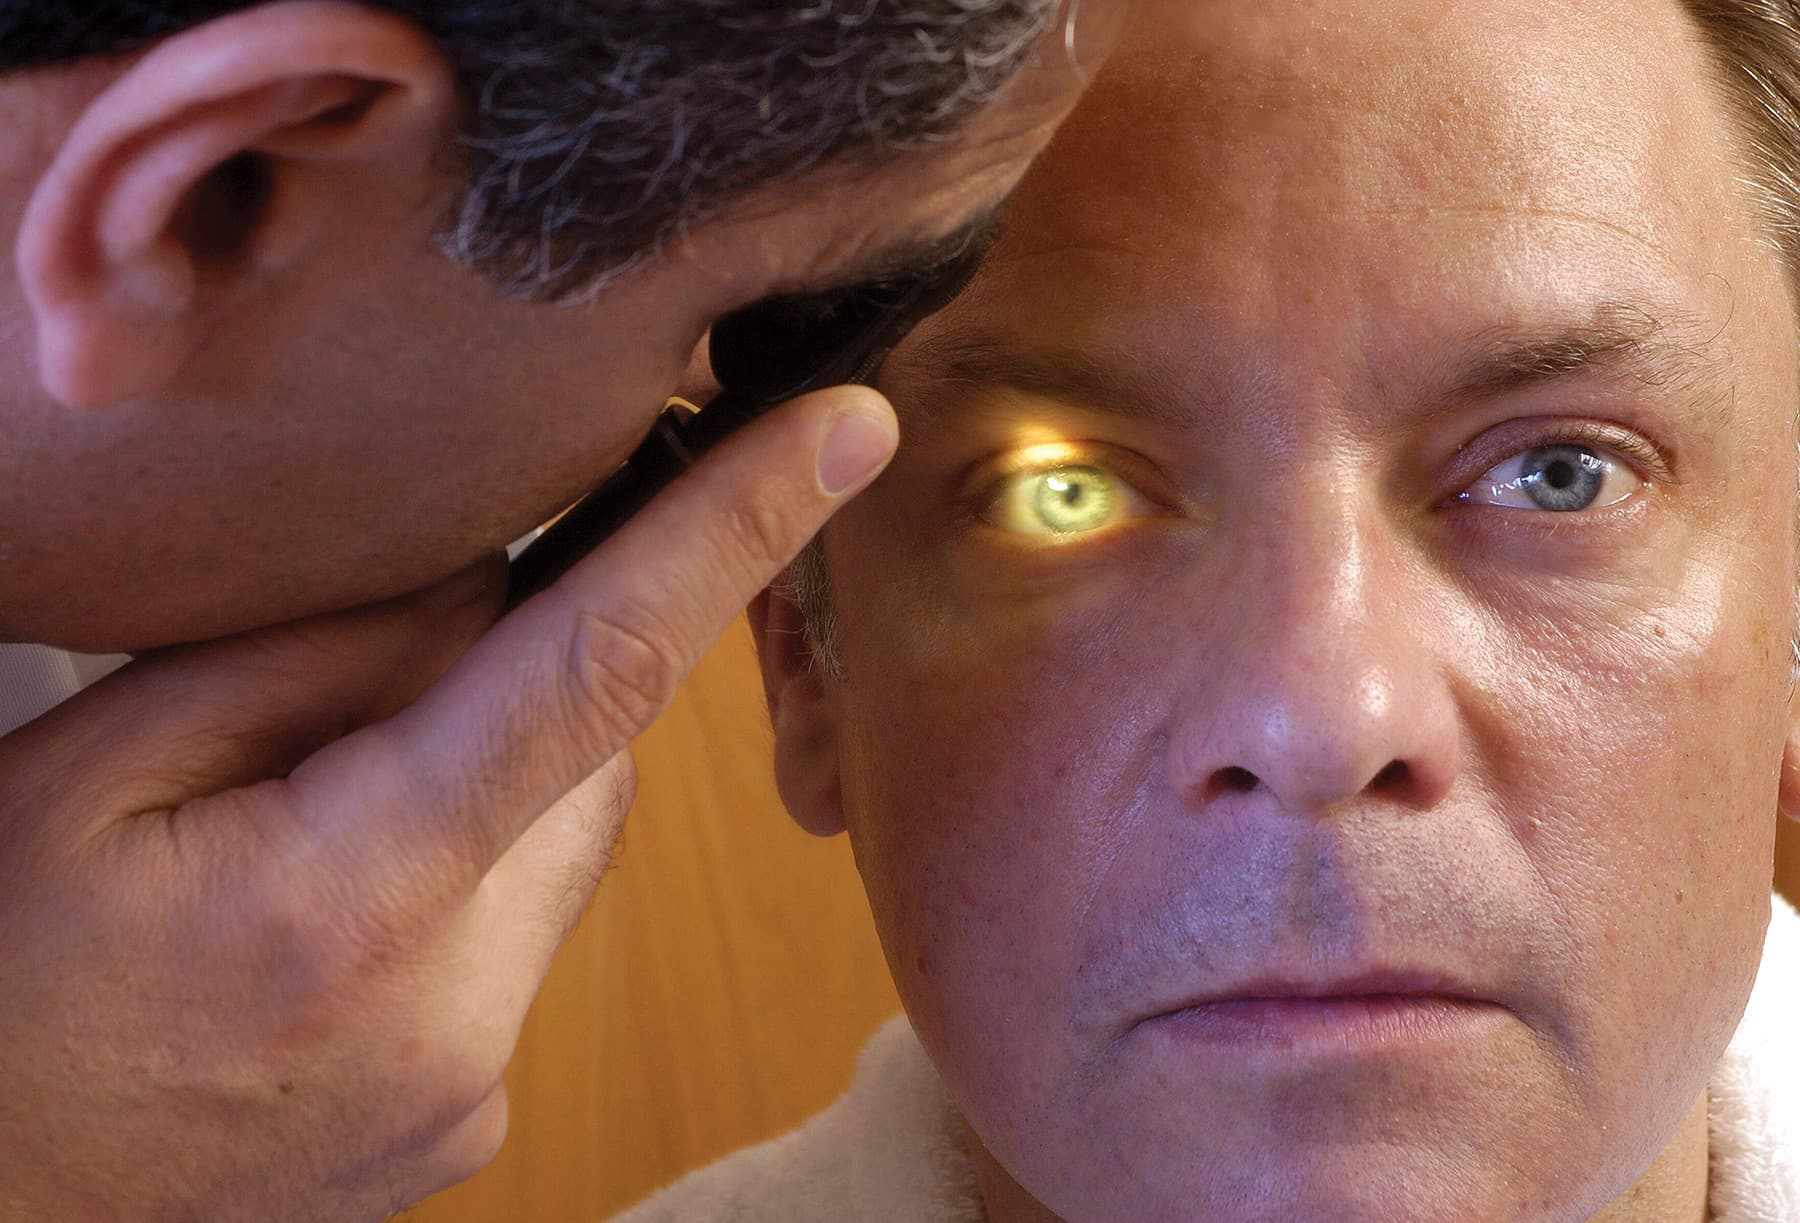 man getting opthalmology exam